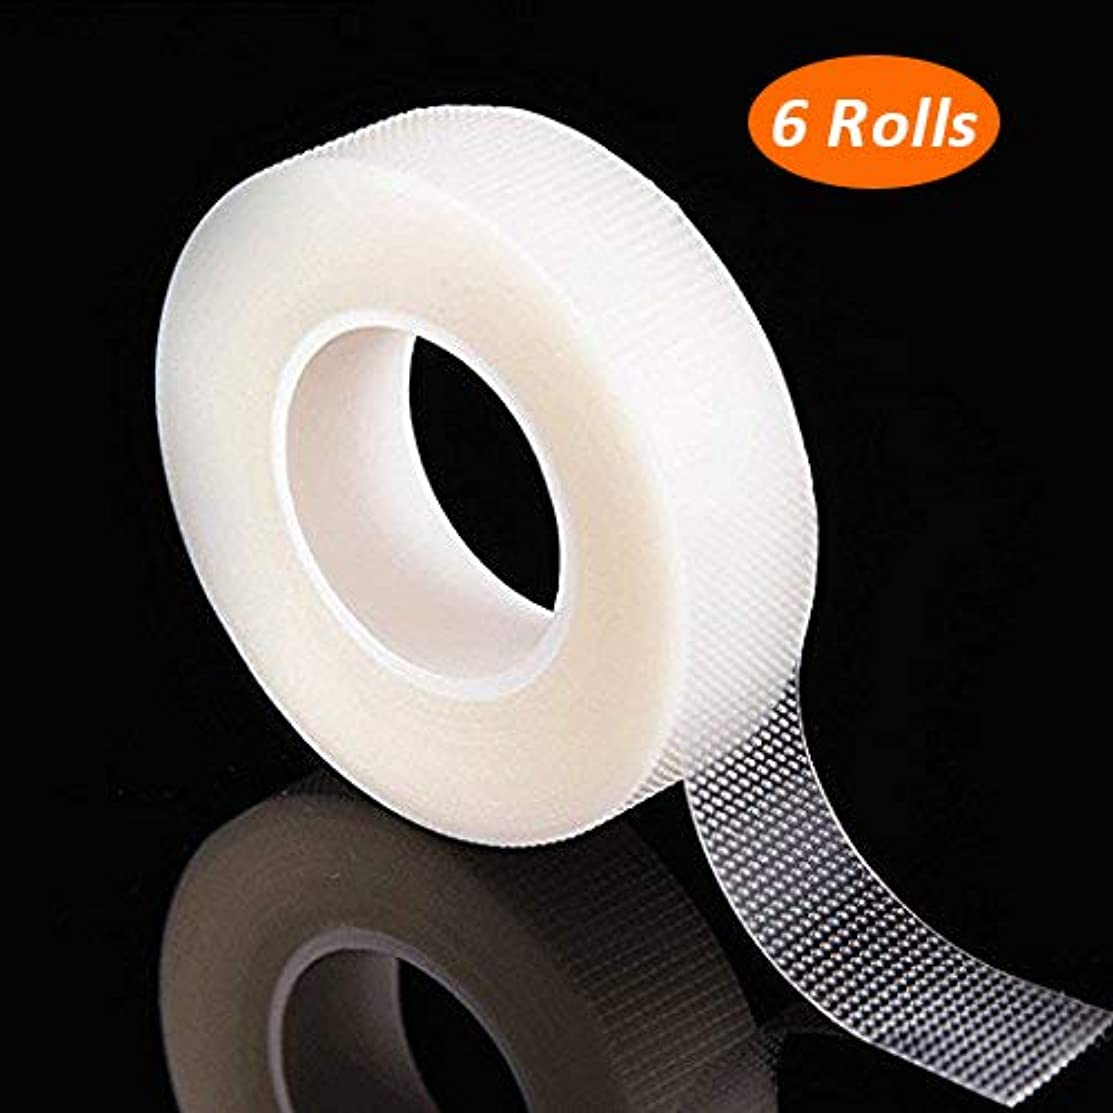 G2PLUS 6 Rolls PE Micropore Medical Tape Roll for Individual Eyelash Extensions,1/2'' x 10 Yards